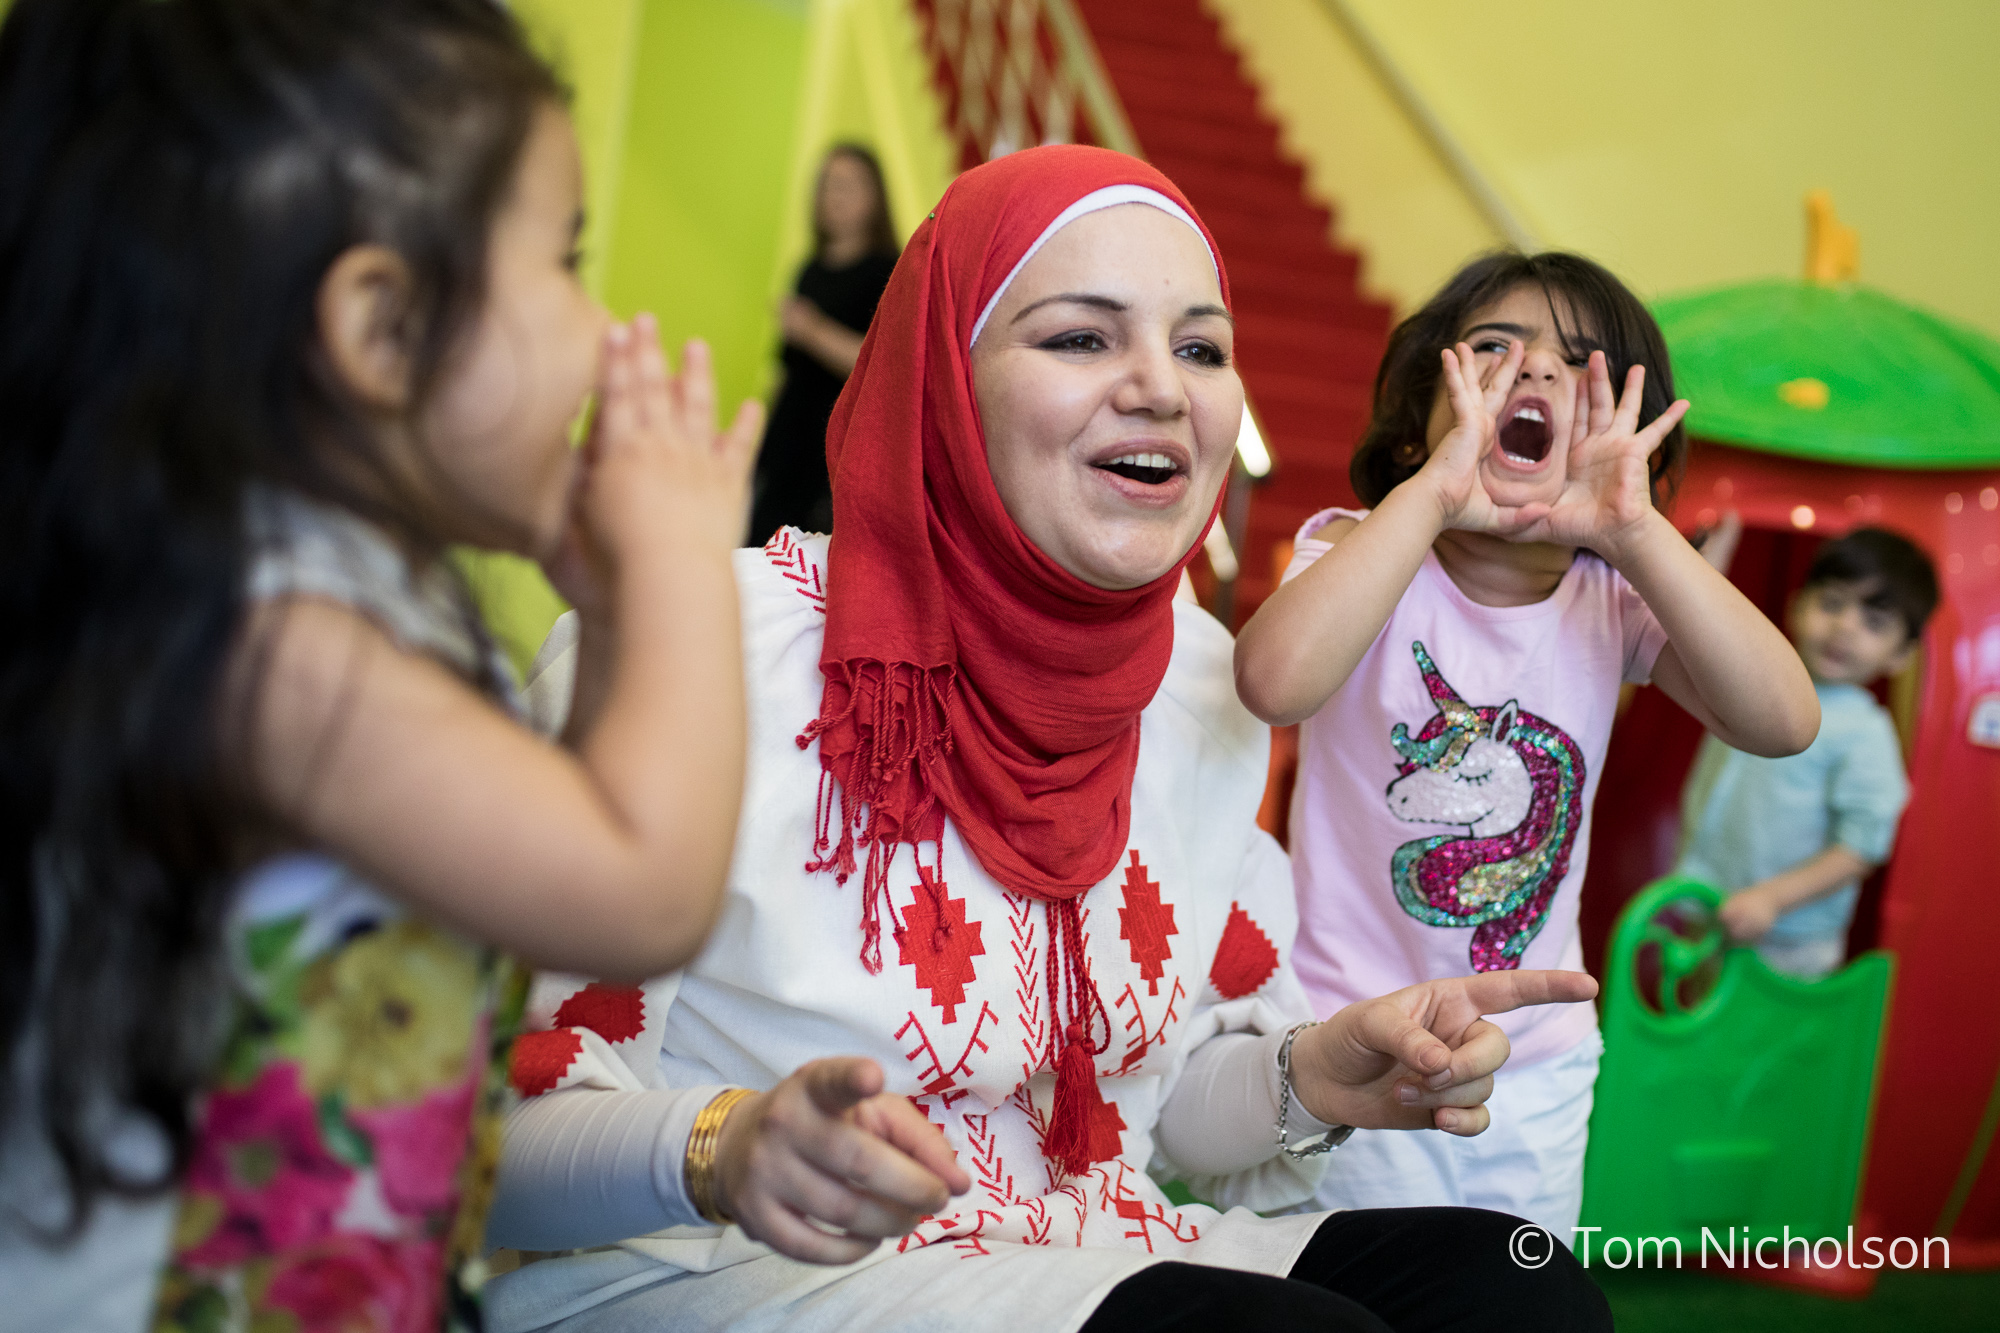 ©2018 Tom Nicholson. 03/07/2018. Gaziantep, Turkey. Dania Al Bouchi, (centre) age 30, from Hama, Syria, runs a Kindergarten in Gaziantep, Turkey with her husband Ahmad Al Bouchi. The pair moved from Deraa, Syria in 2013, expecting the conflict to be solved in one to two years, but haven't seen their loved ones for over six years. After moving to Turkey, Dania started studying Turkish but struggled as she had nowhere to leave her children. She then started her own Kindergarten, employing Syrian women as staff. Using her background in civil engineering, she designed the building and also the business' branding. Any children are welcome to the Kindergarten, and Dania hopes it will encourage Syrian mothers to be able to work or study whilst their children are safely looked after.